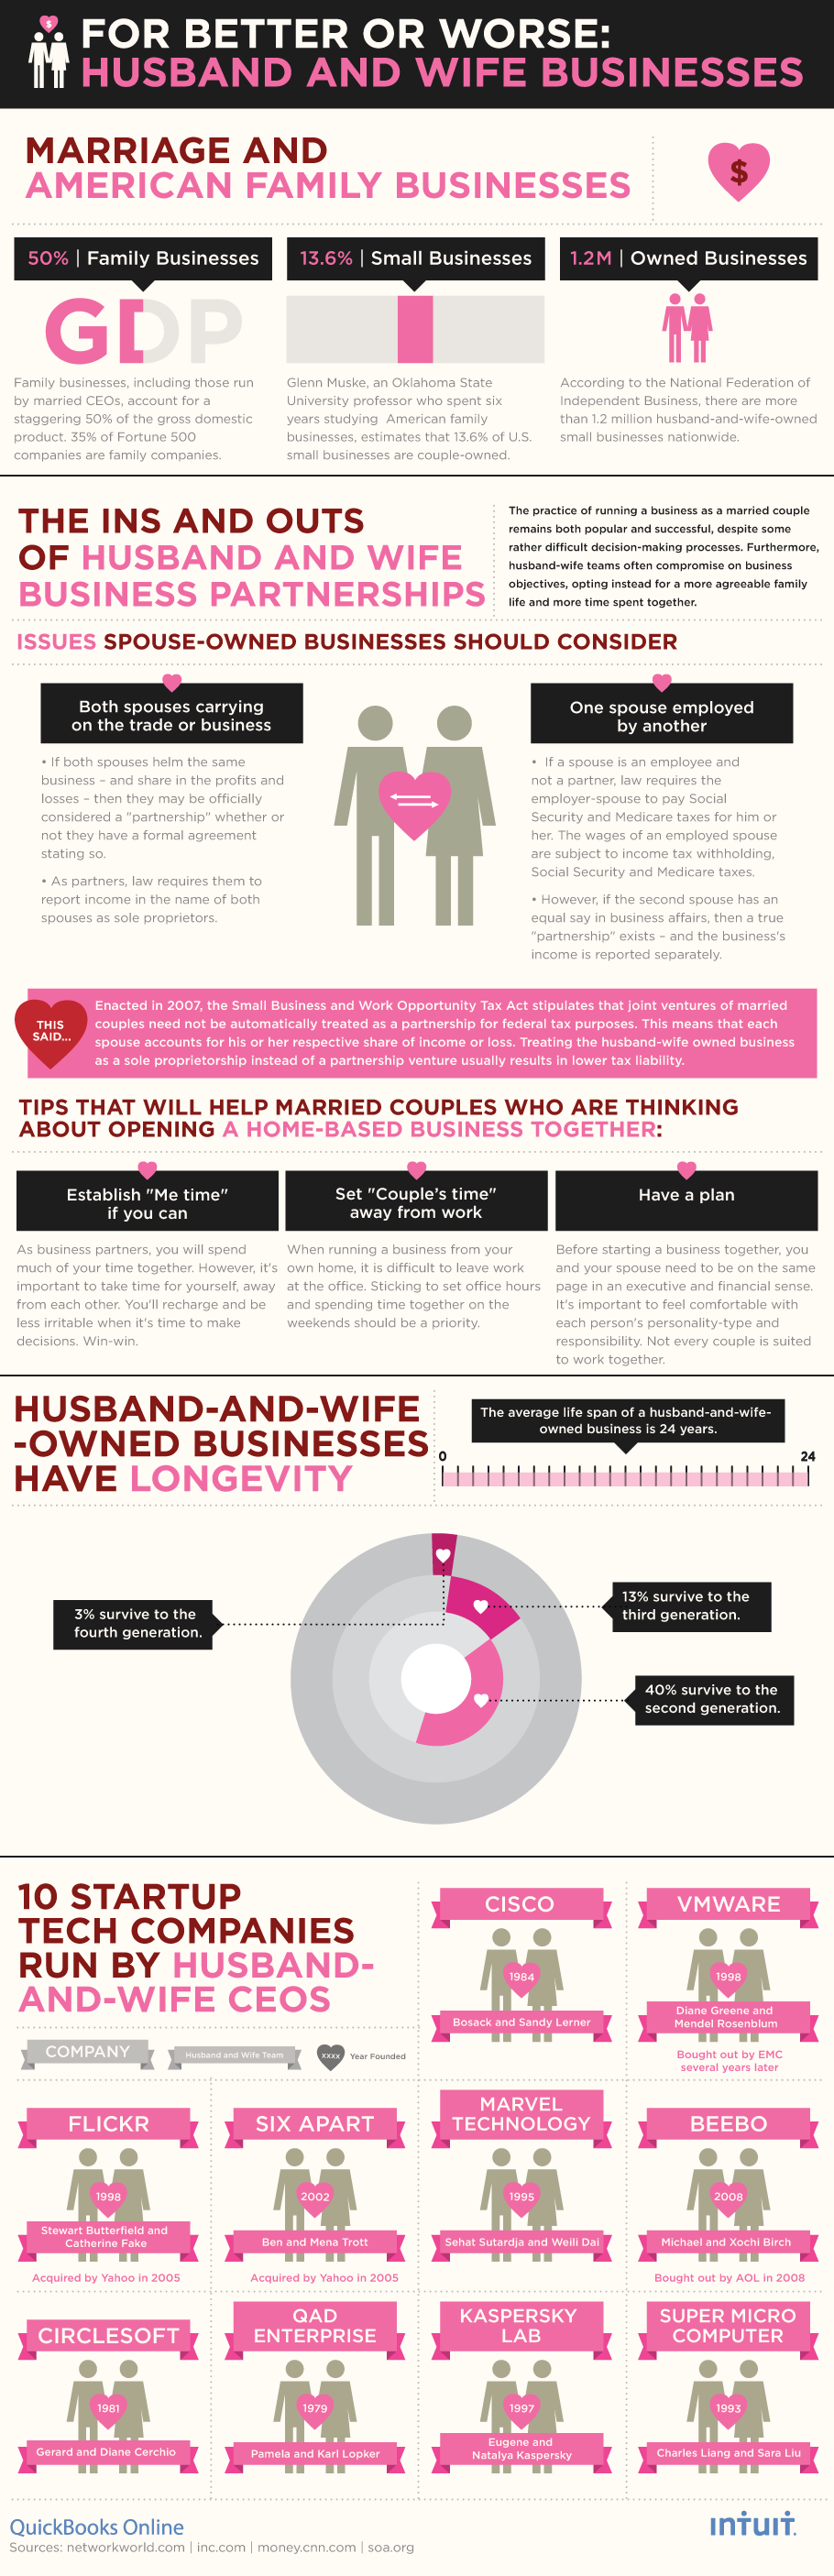 for better or for worse: husband and wife businesses [infographic